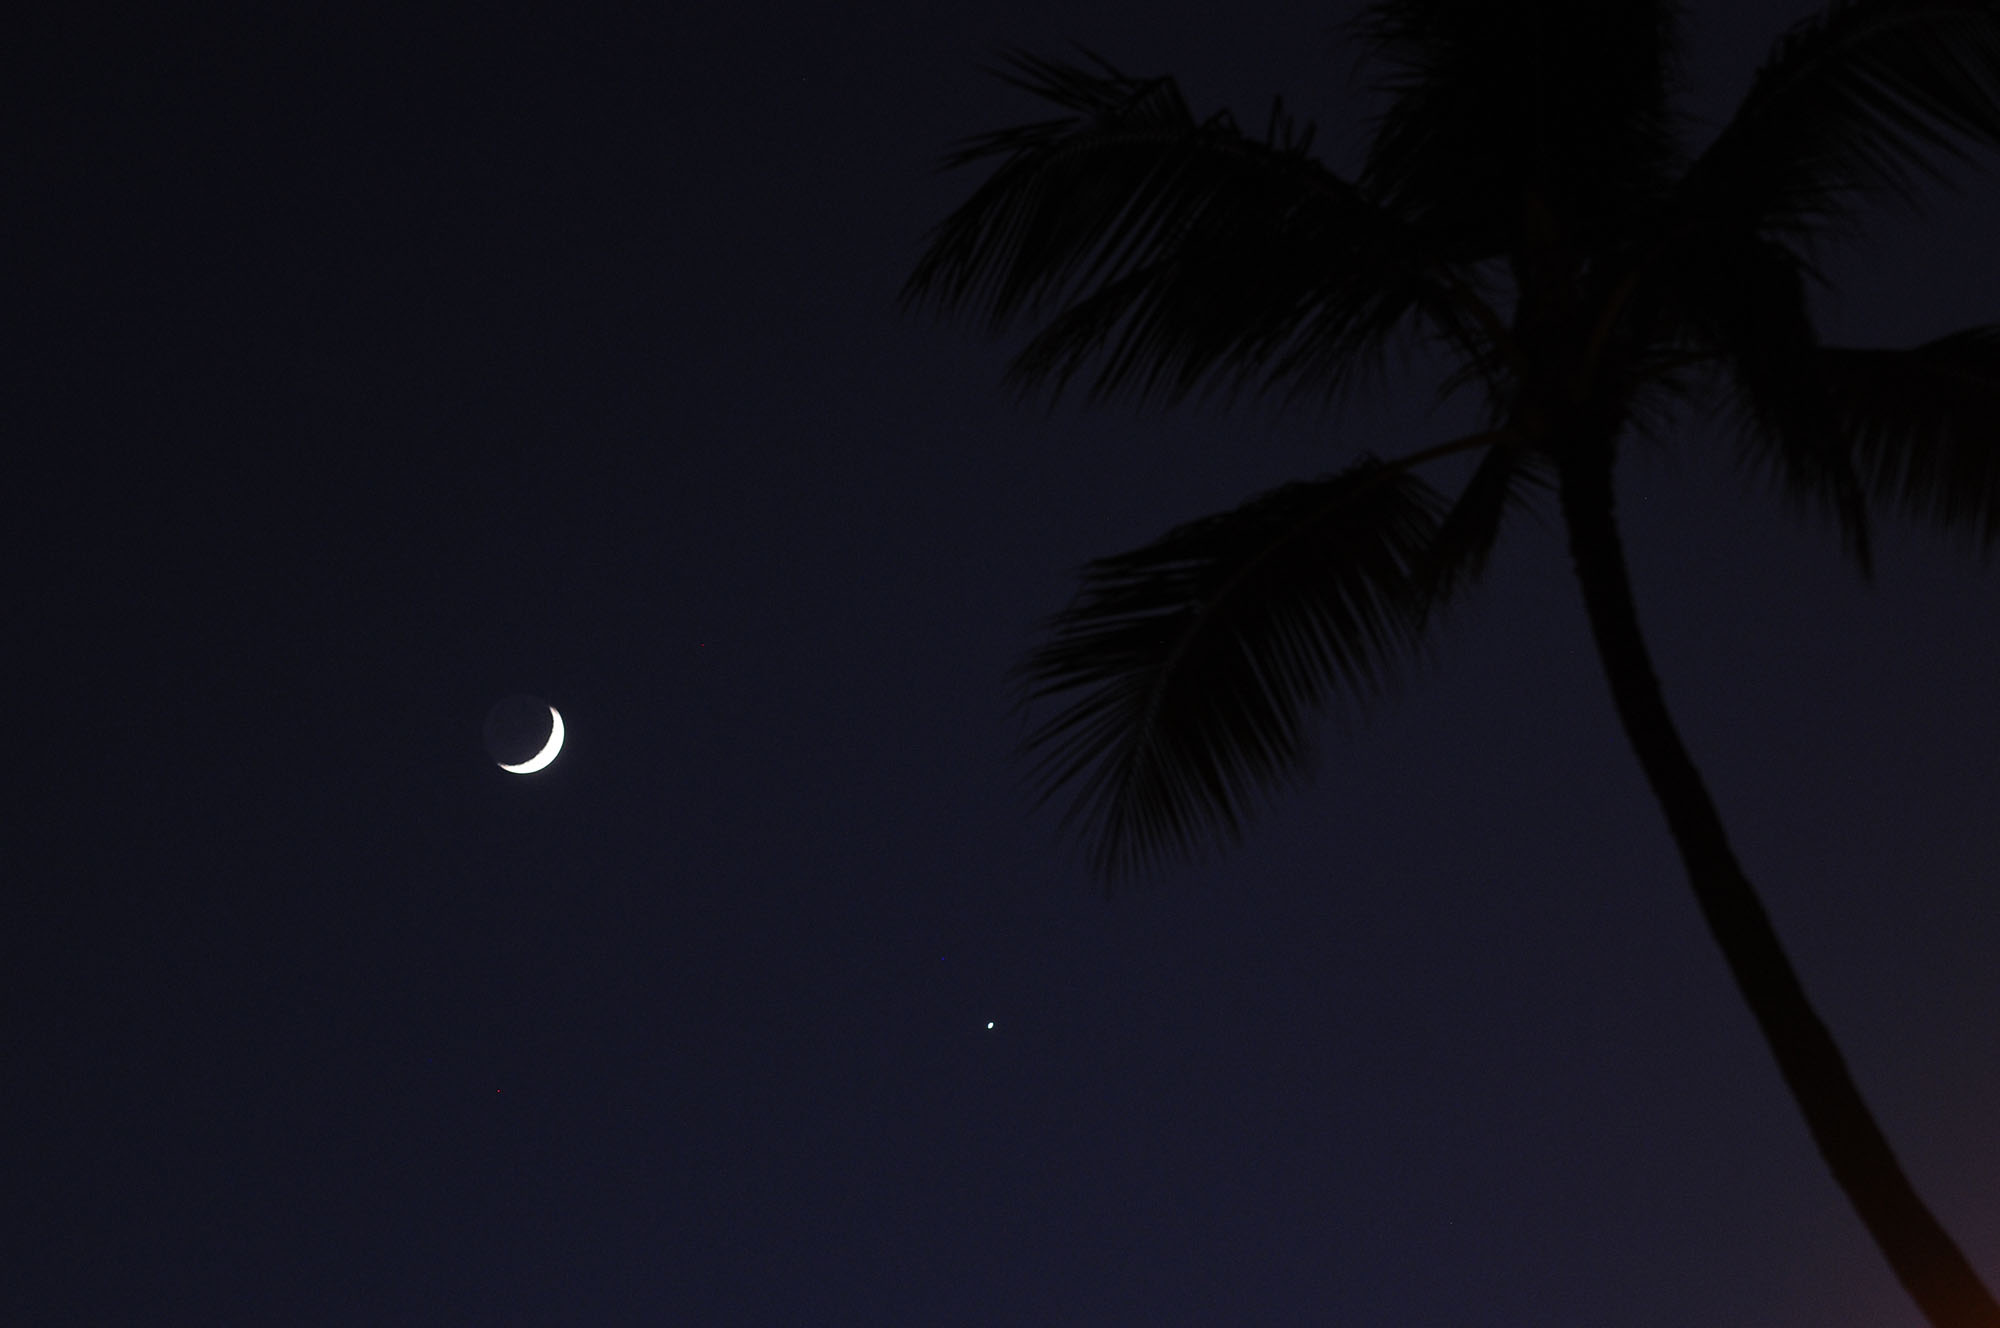 Aloha, Venus and Moon: Dazzling View by Wayne S.